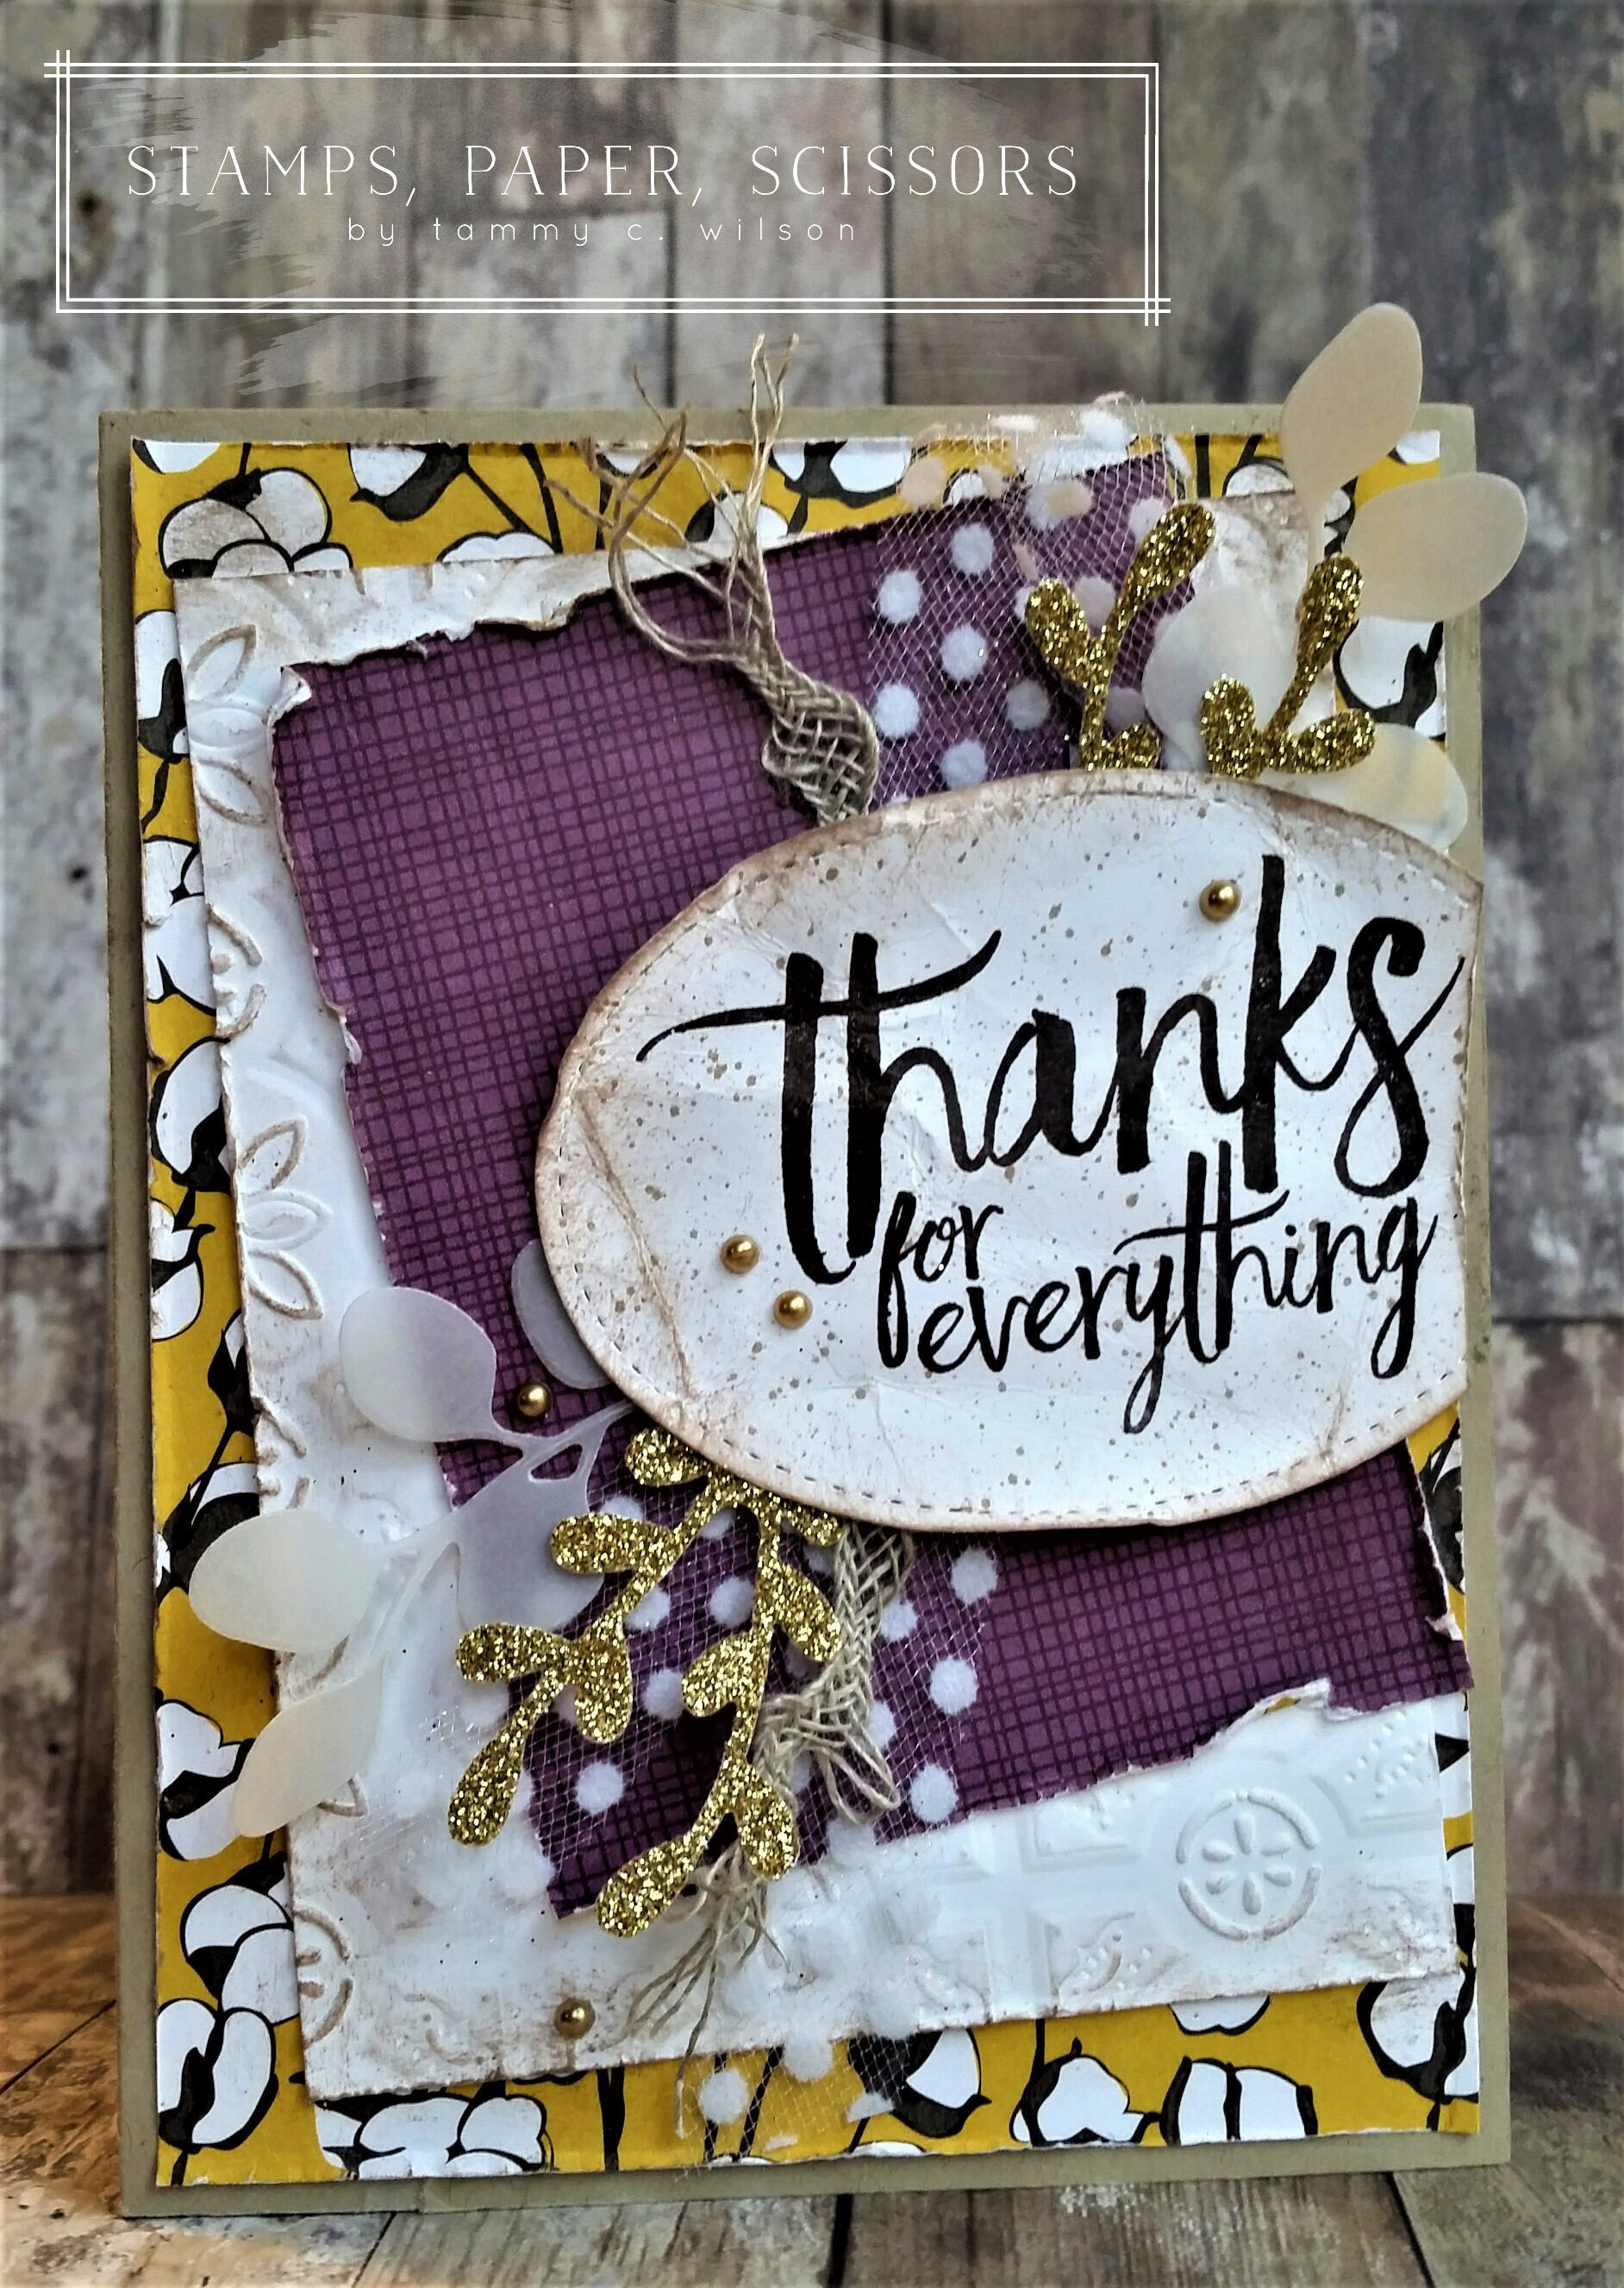 All Things Thanks - Thanks for Everything by Tammy C. Wilson